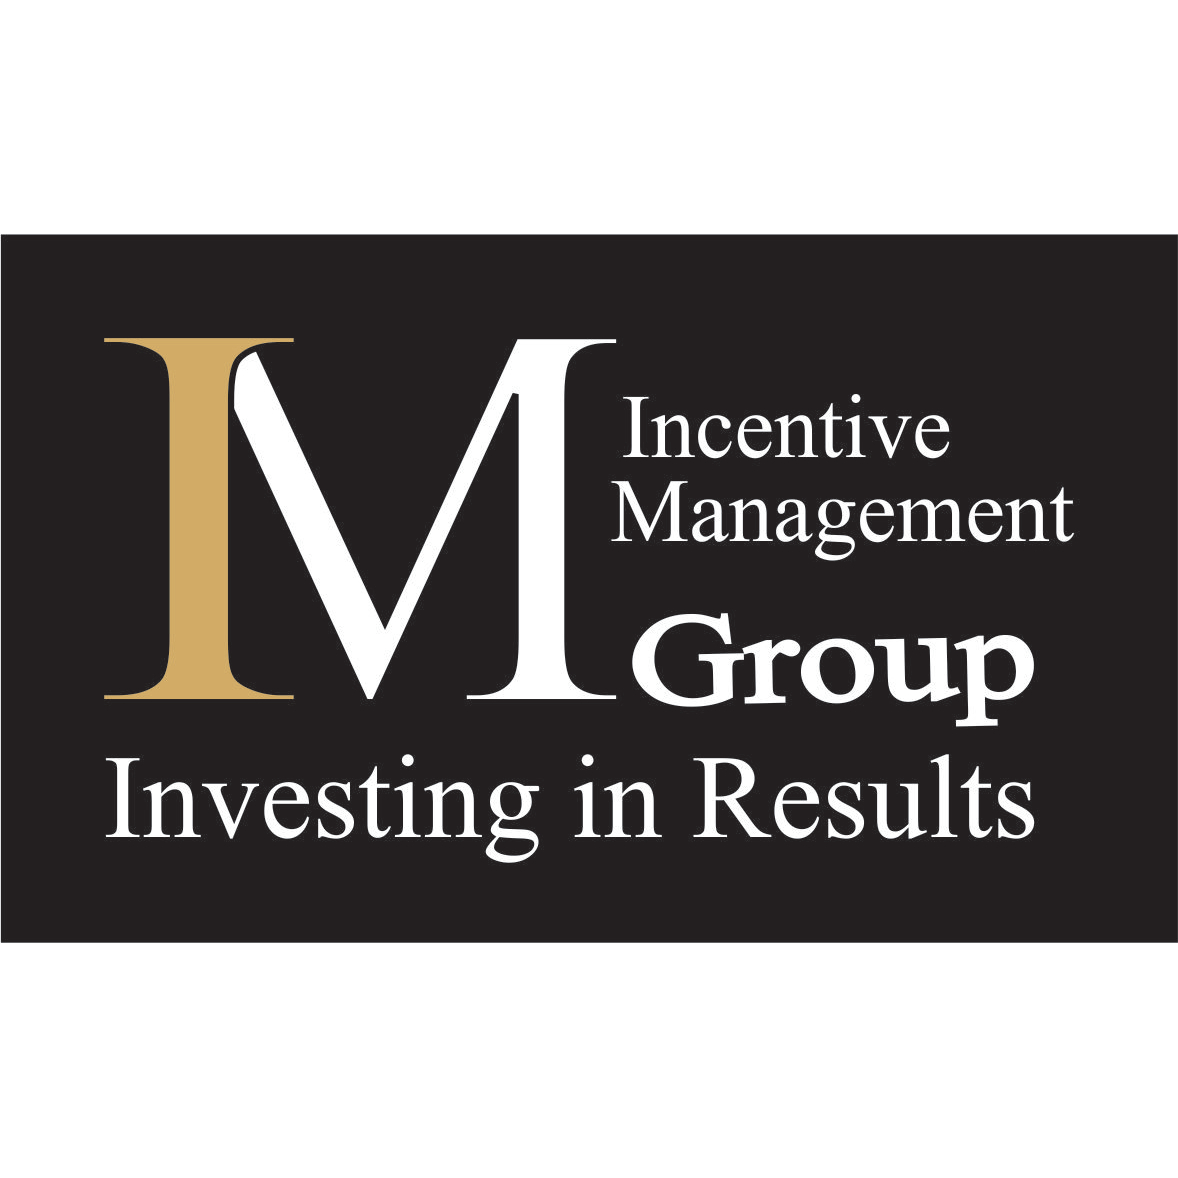 Incentive Management Group